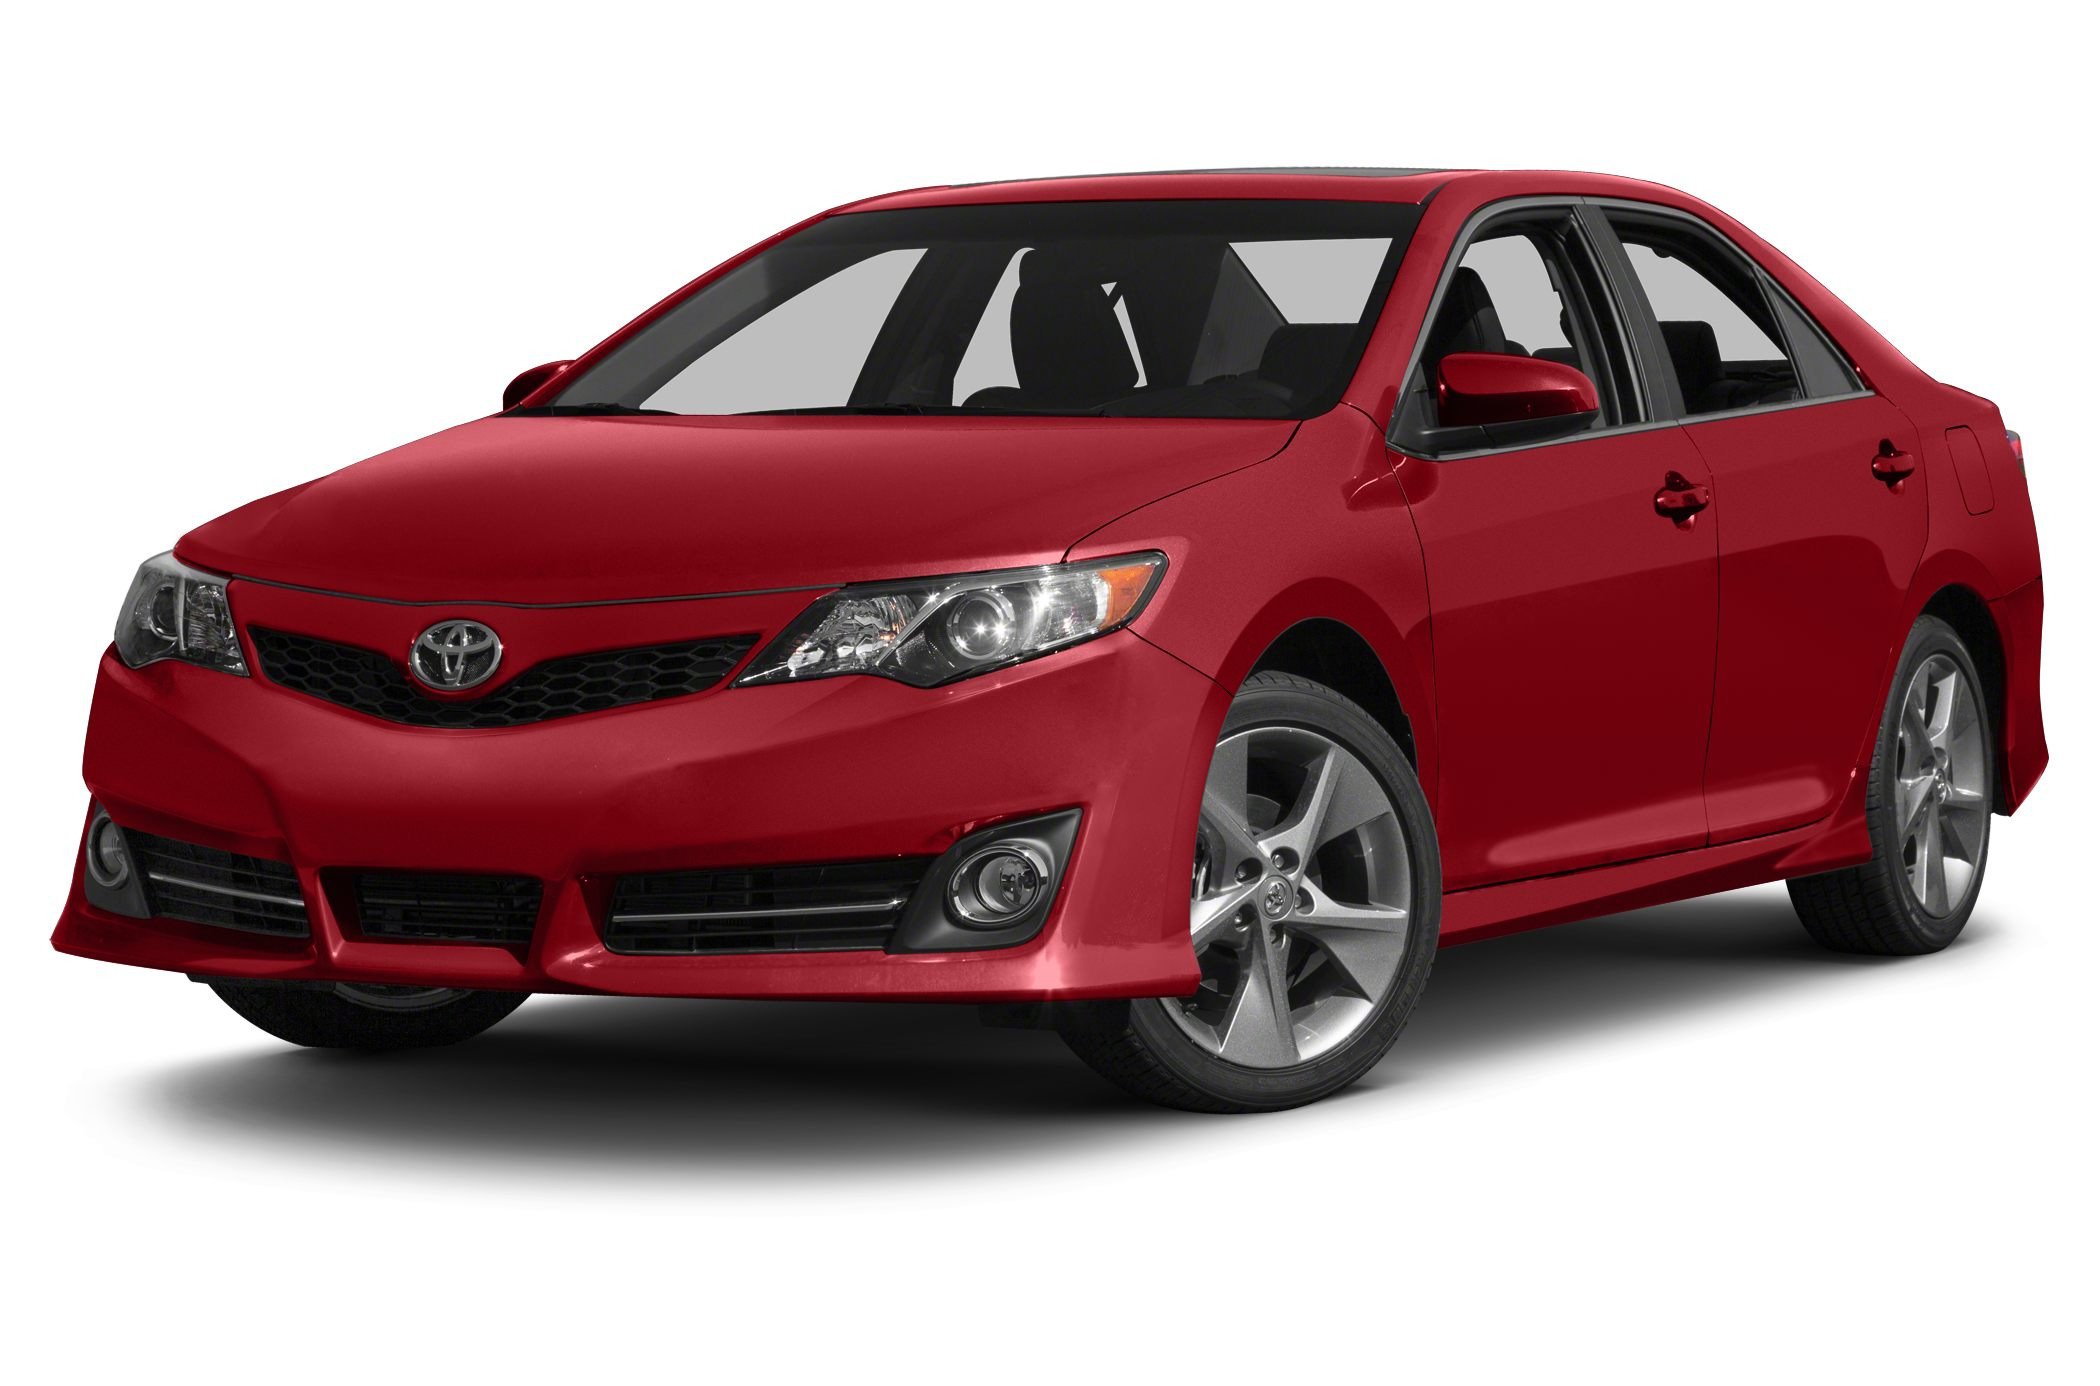 2014 Toyota Camry SE Sedan for sale in Sumter for $19,970 with 20,020 miles.